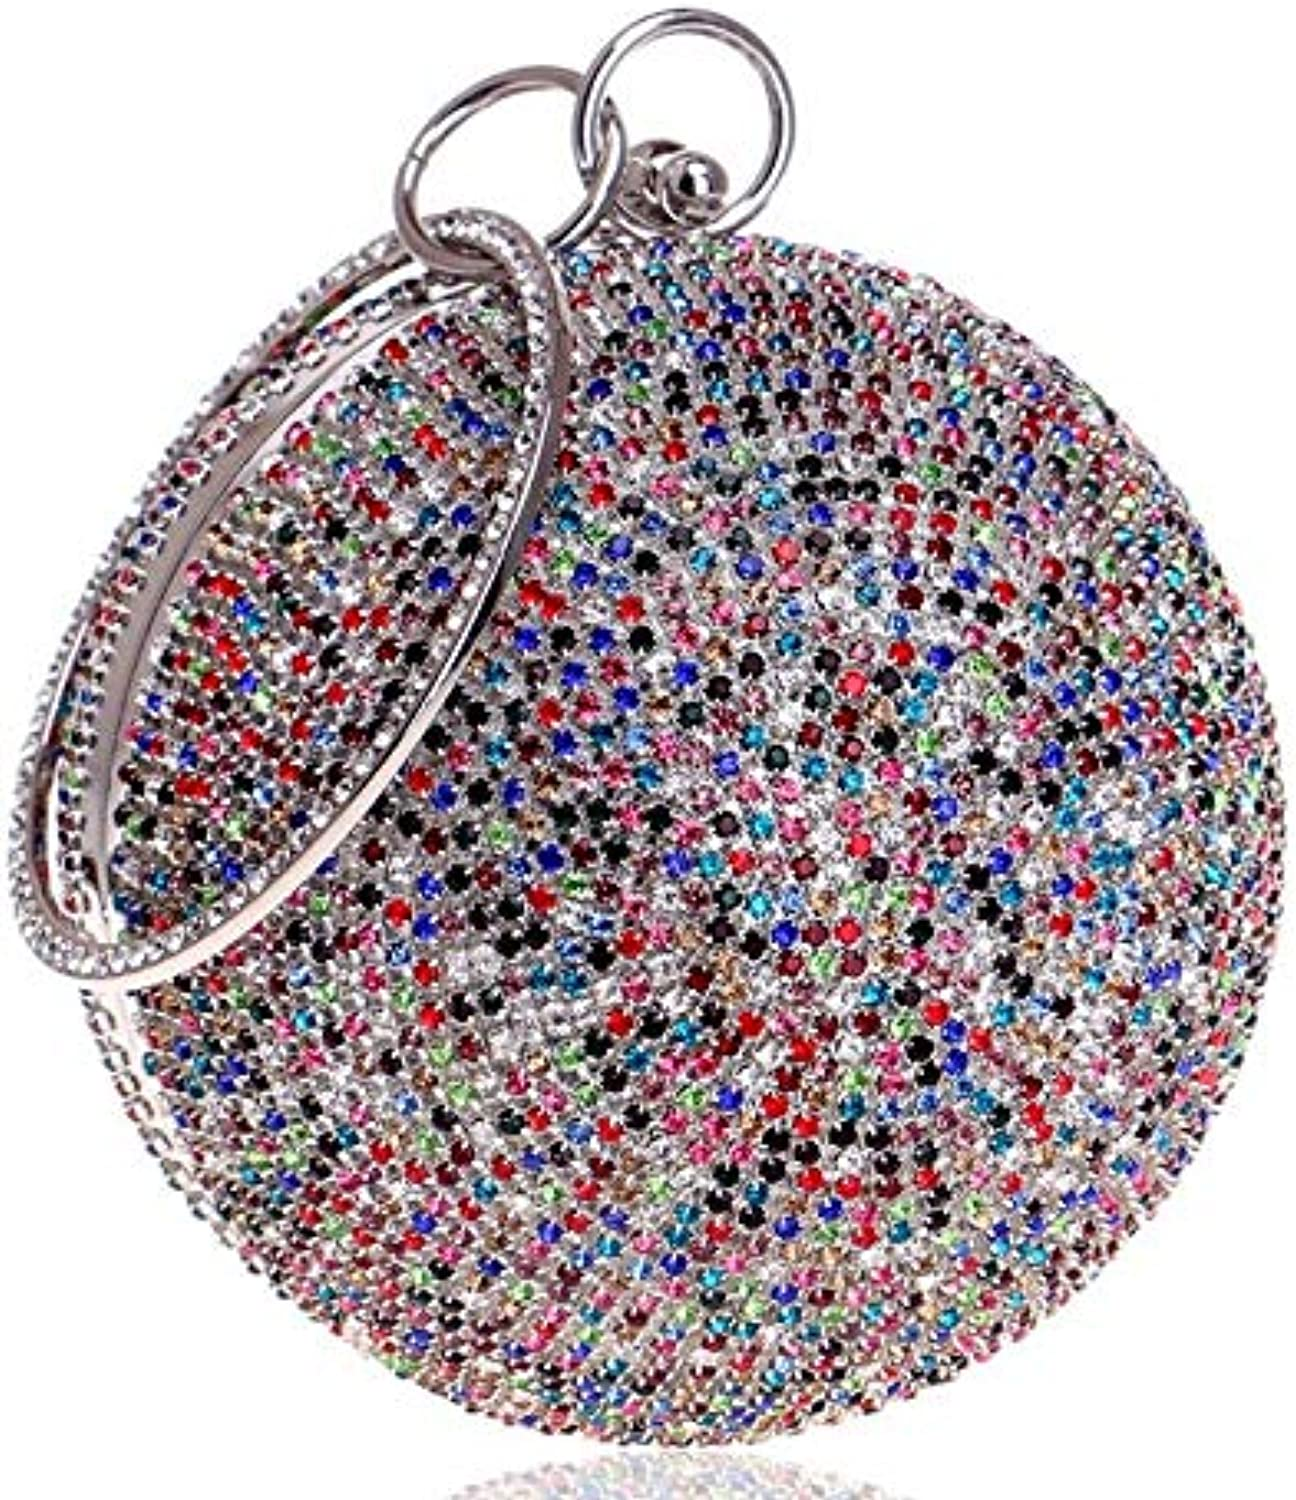 Clutch Bag Women's Evening Fashion Handbag Party Beautiful Luxury Purses Evening Bag (color   Multicolord, Size   Free Size)